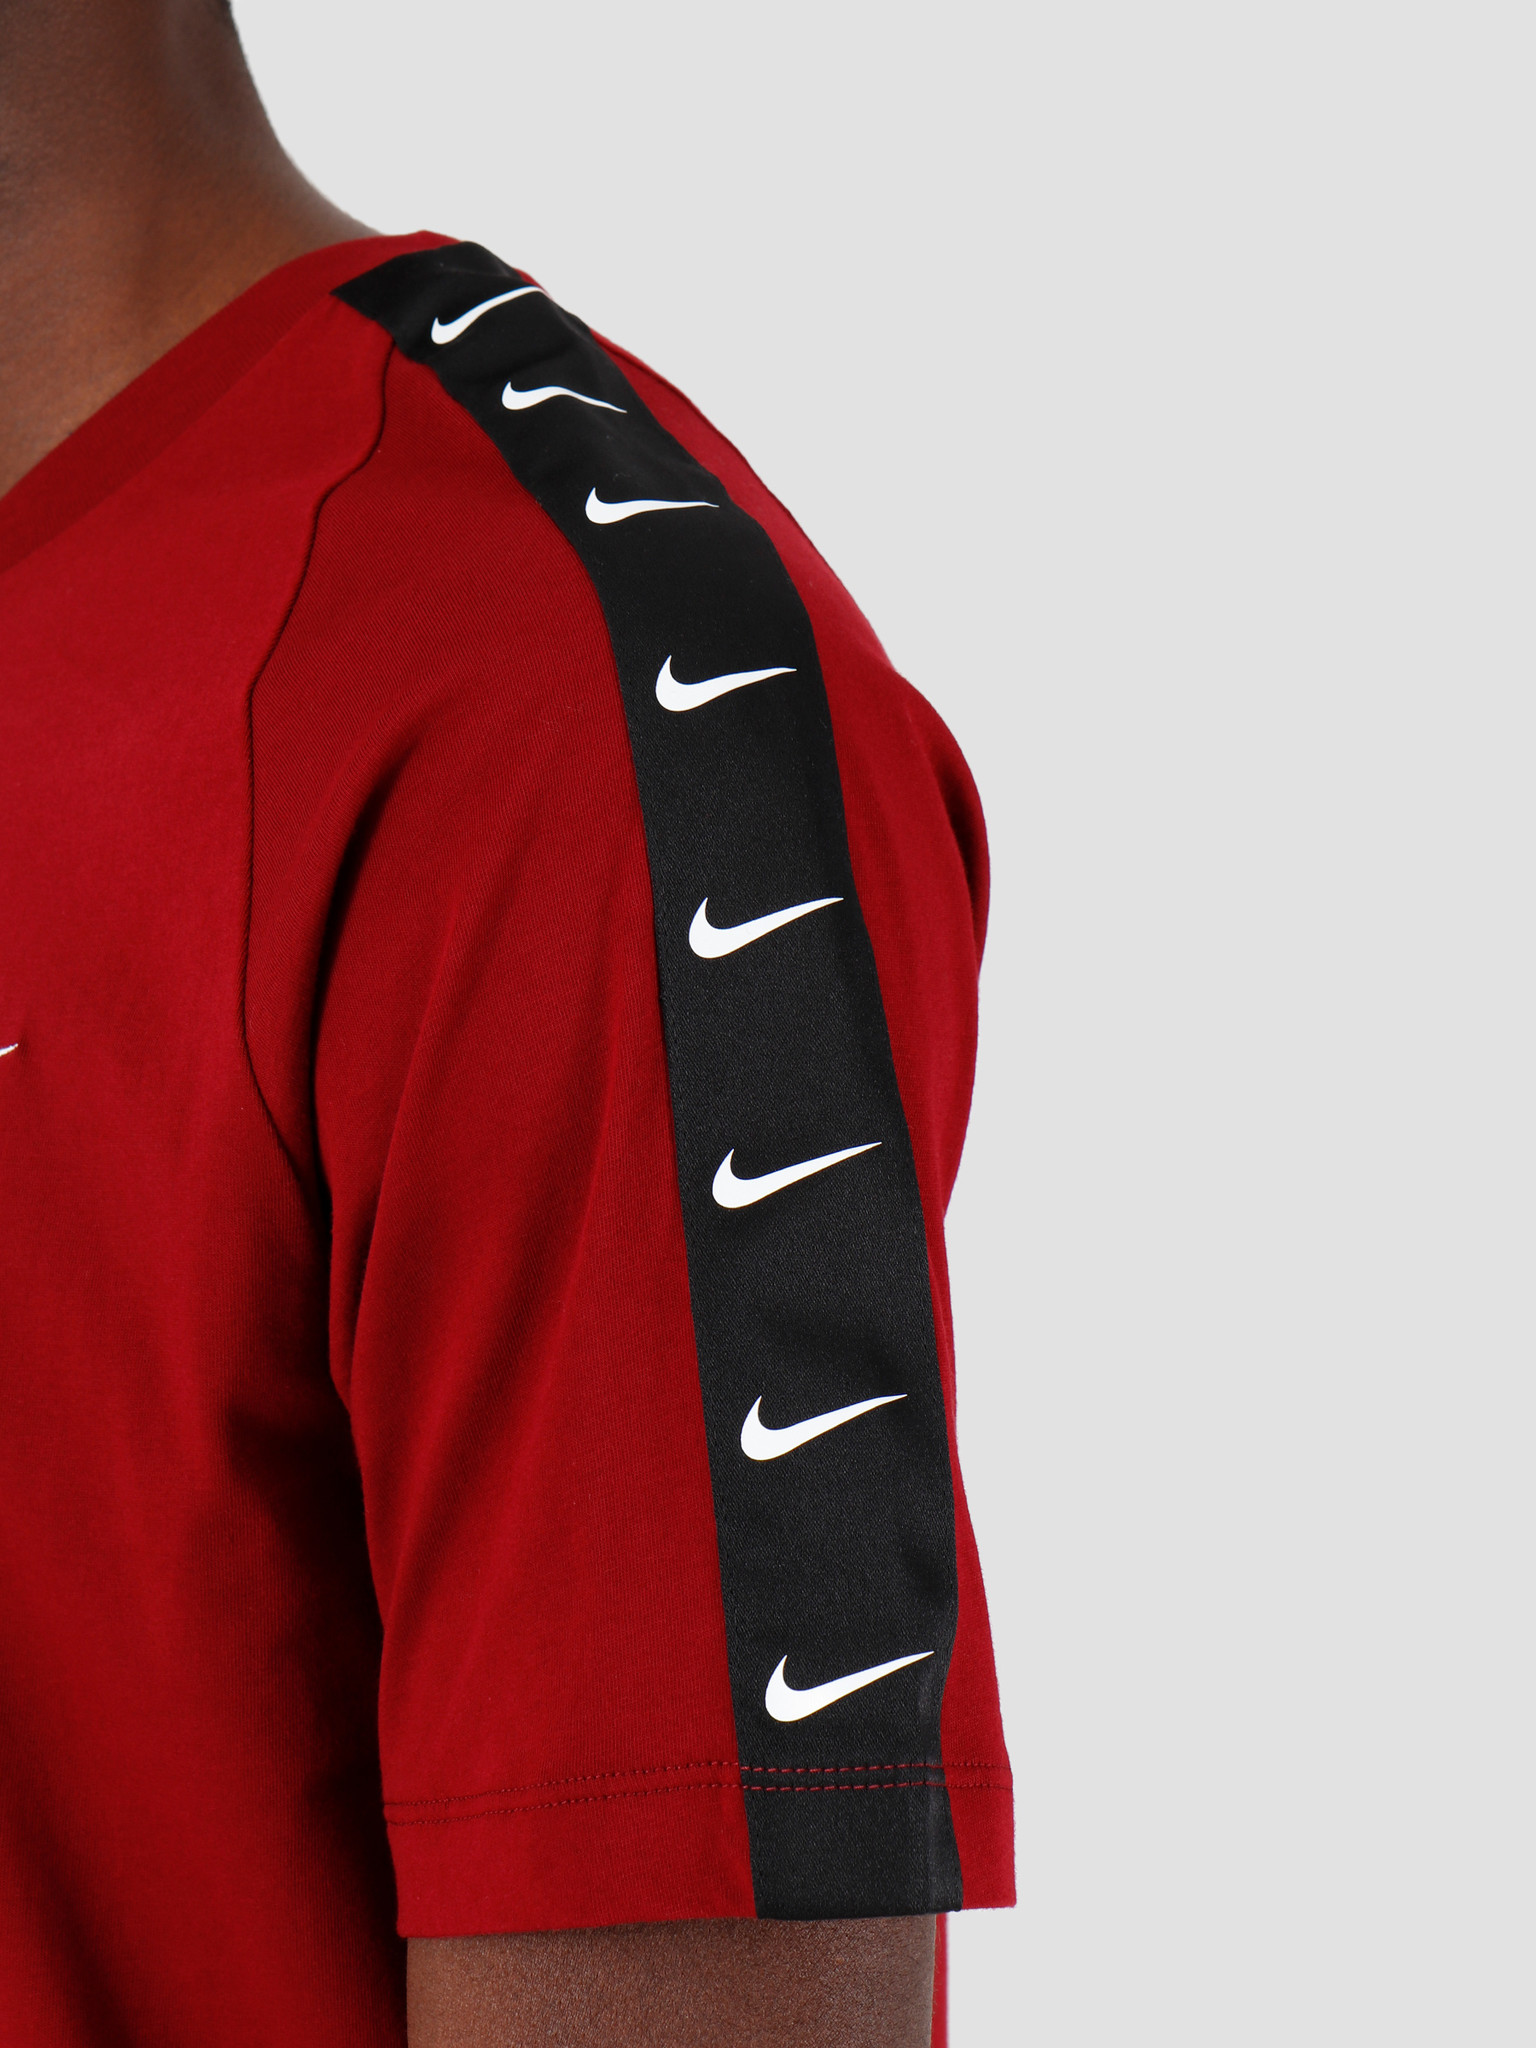 Nike Nike NSW T-Shirt Hbr Swoosh 2 Tea Red White BQ0024-677